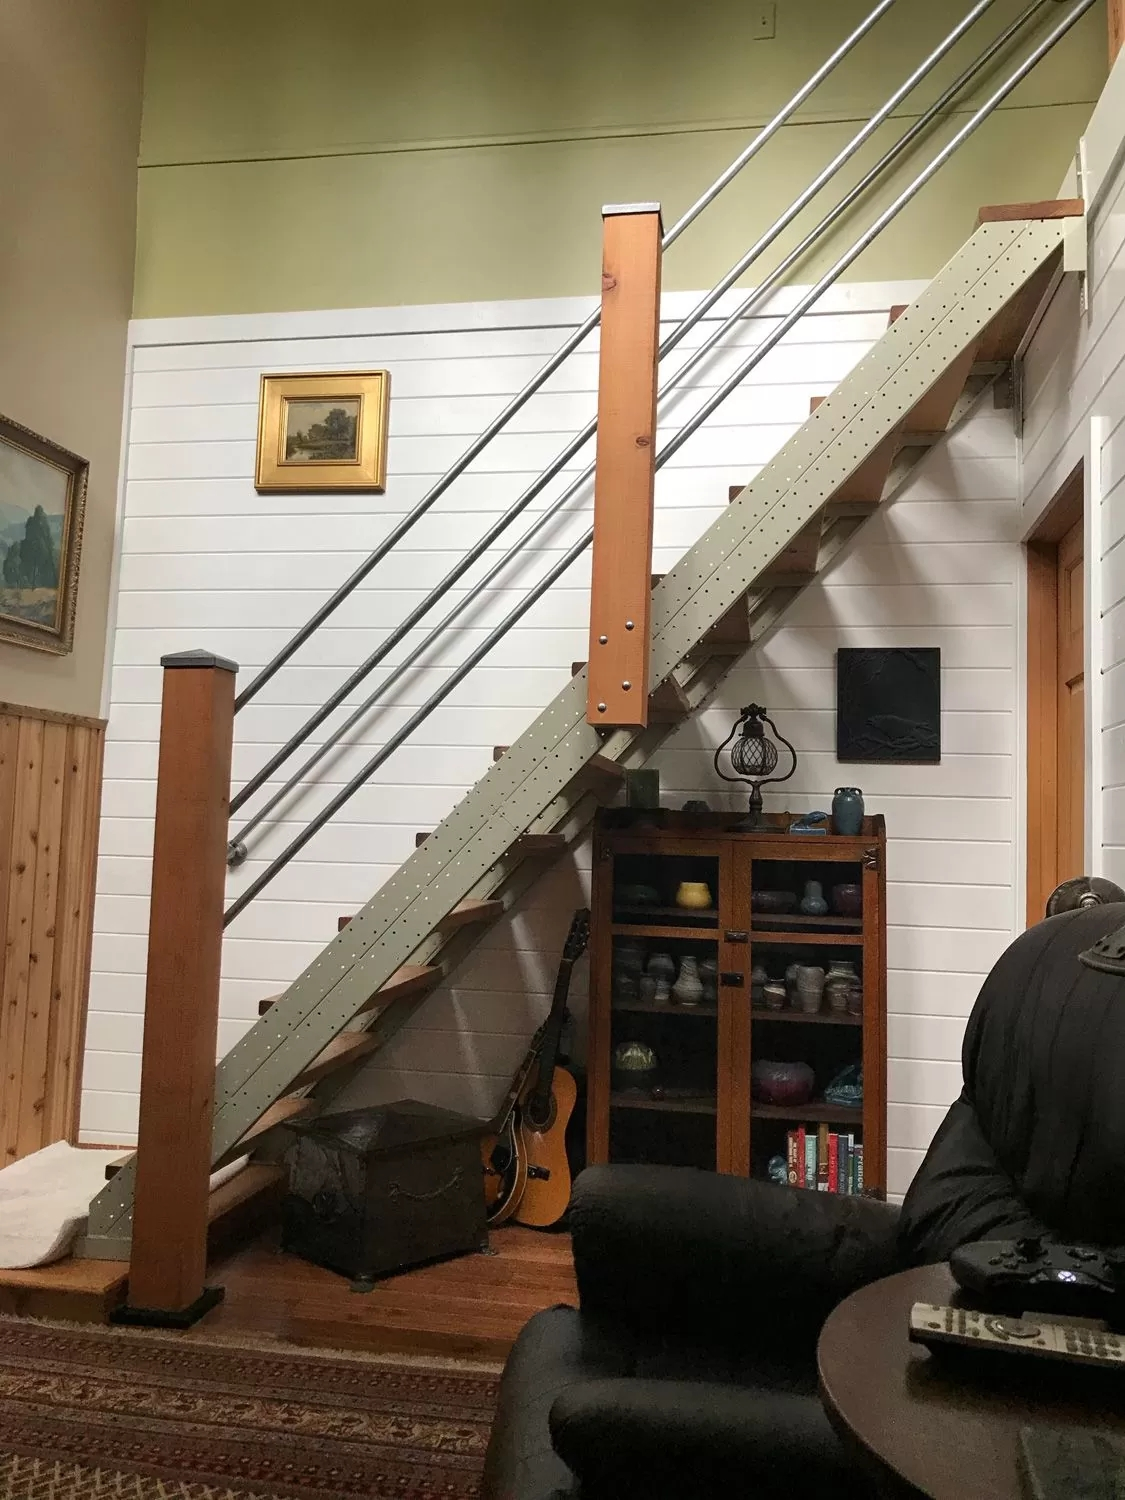 Stair Kits For Basement Attic Deck Loft Storage And More | Outside Stairs To Basement | Walkout | Too Steep | Residential | Both Side | Side Entrance